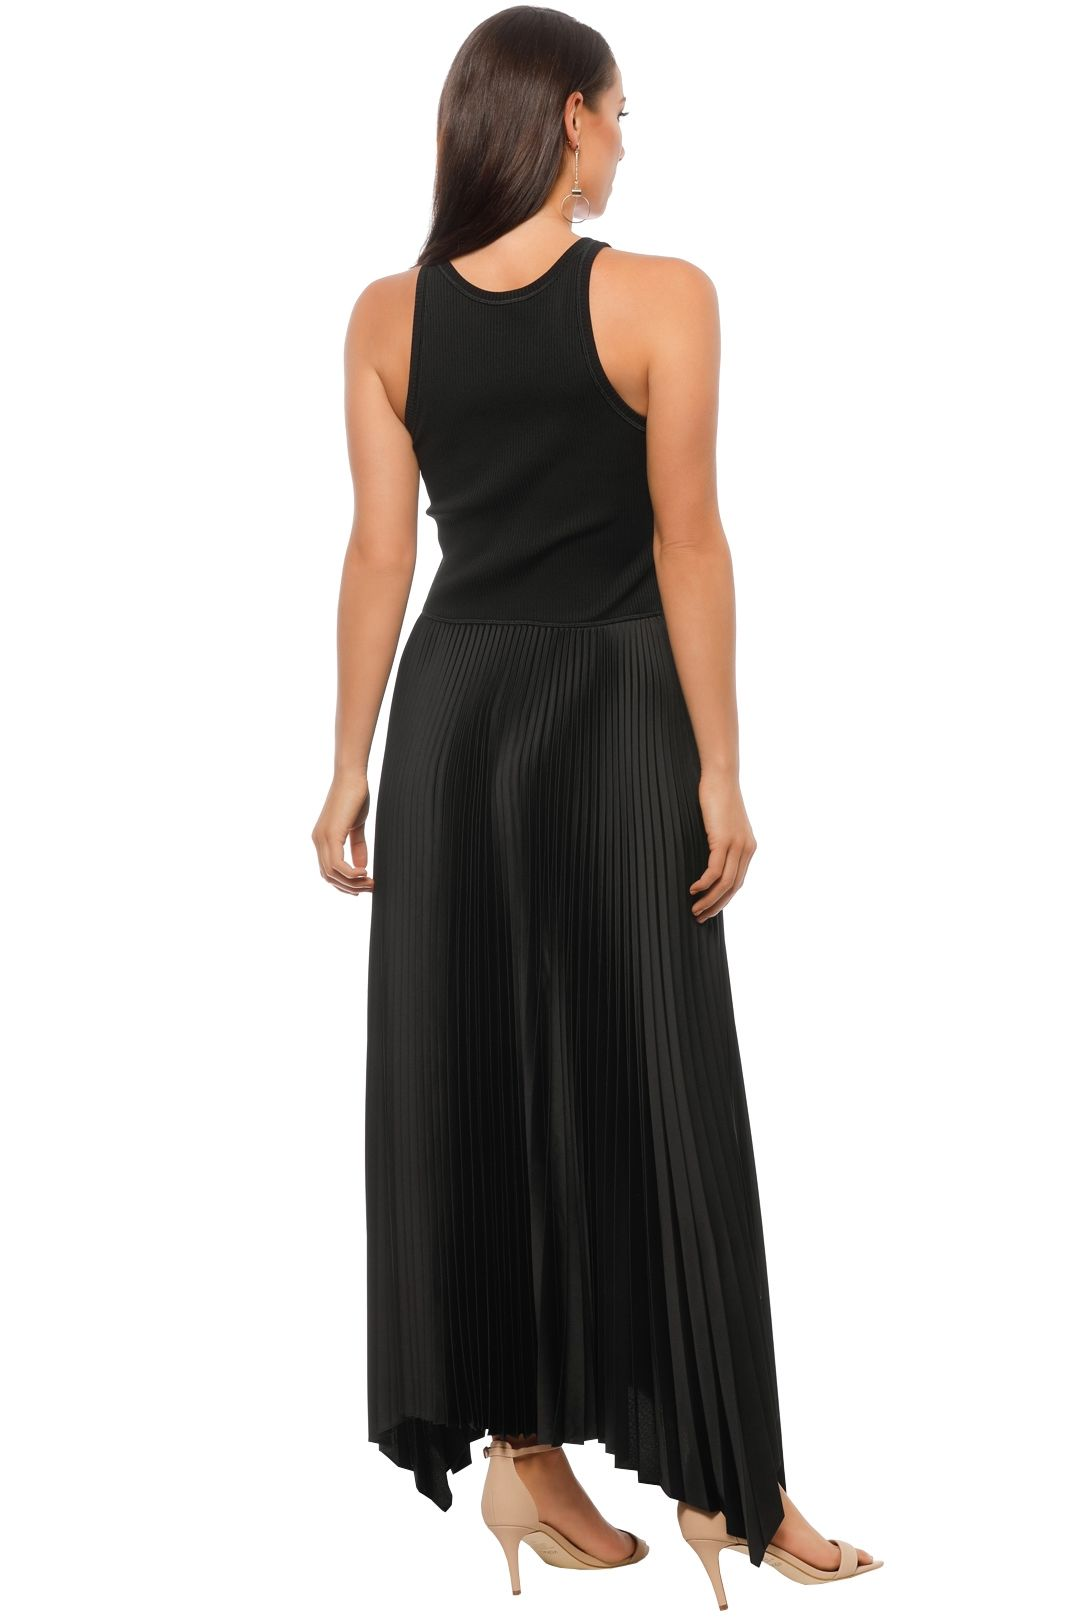 Theory - Vinessi Pleat Dress - Black - Back